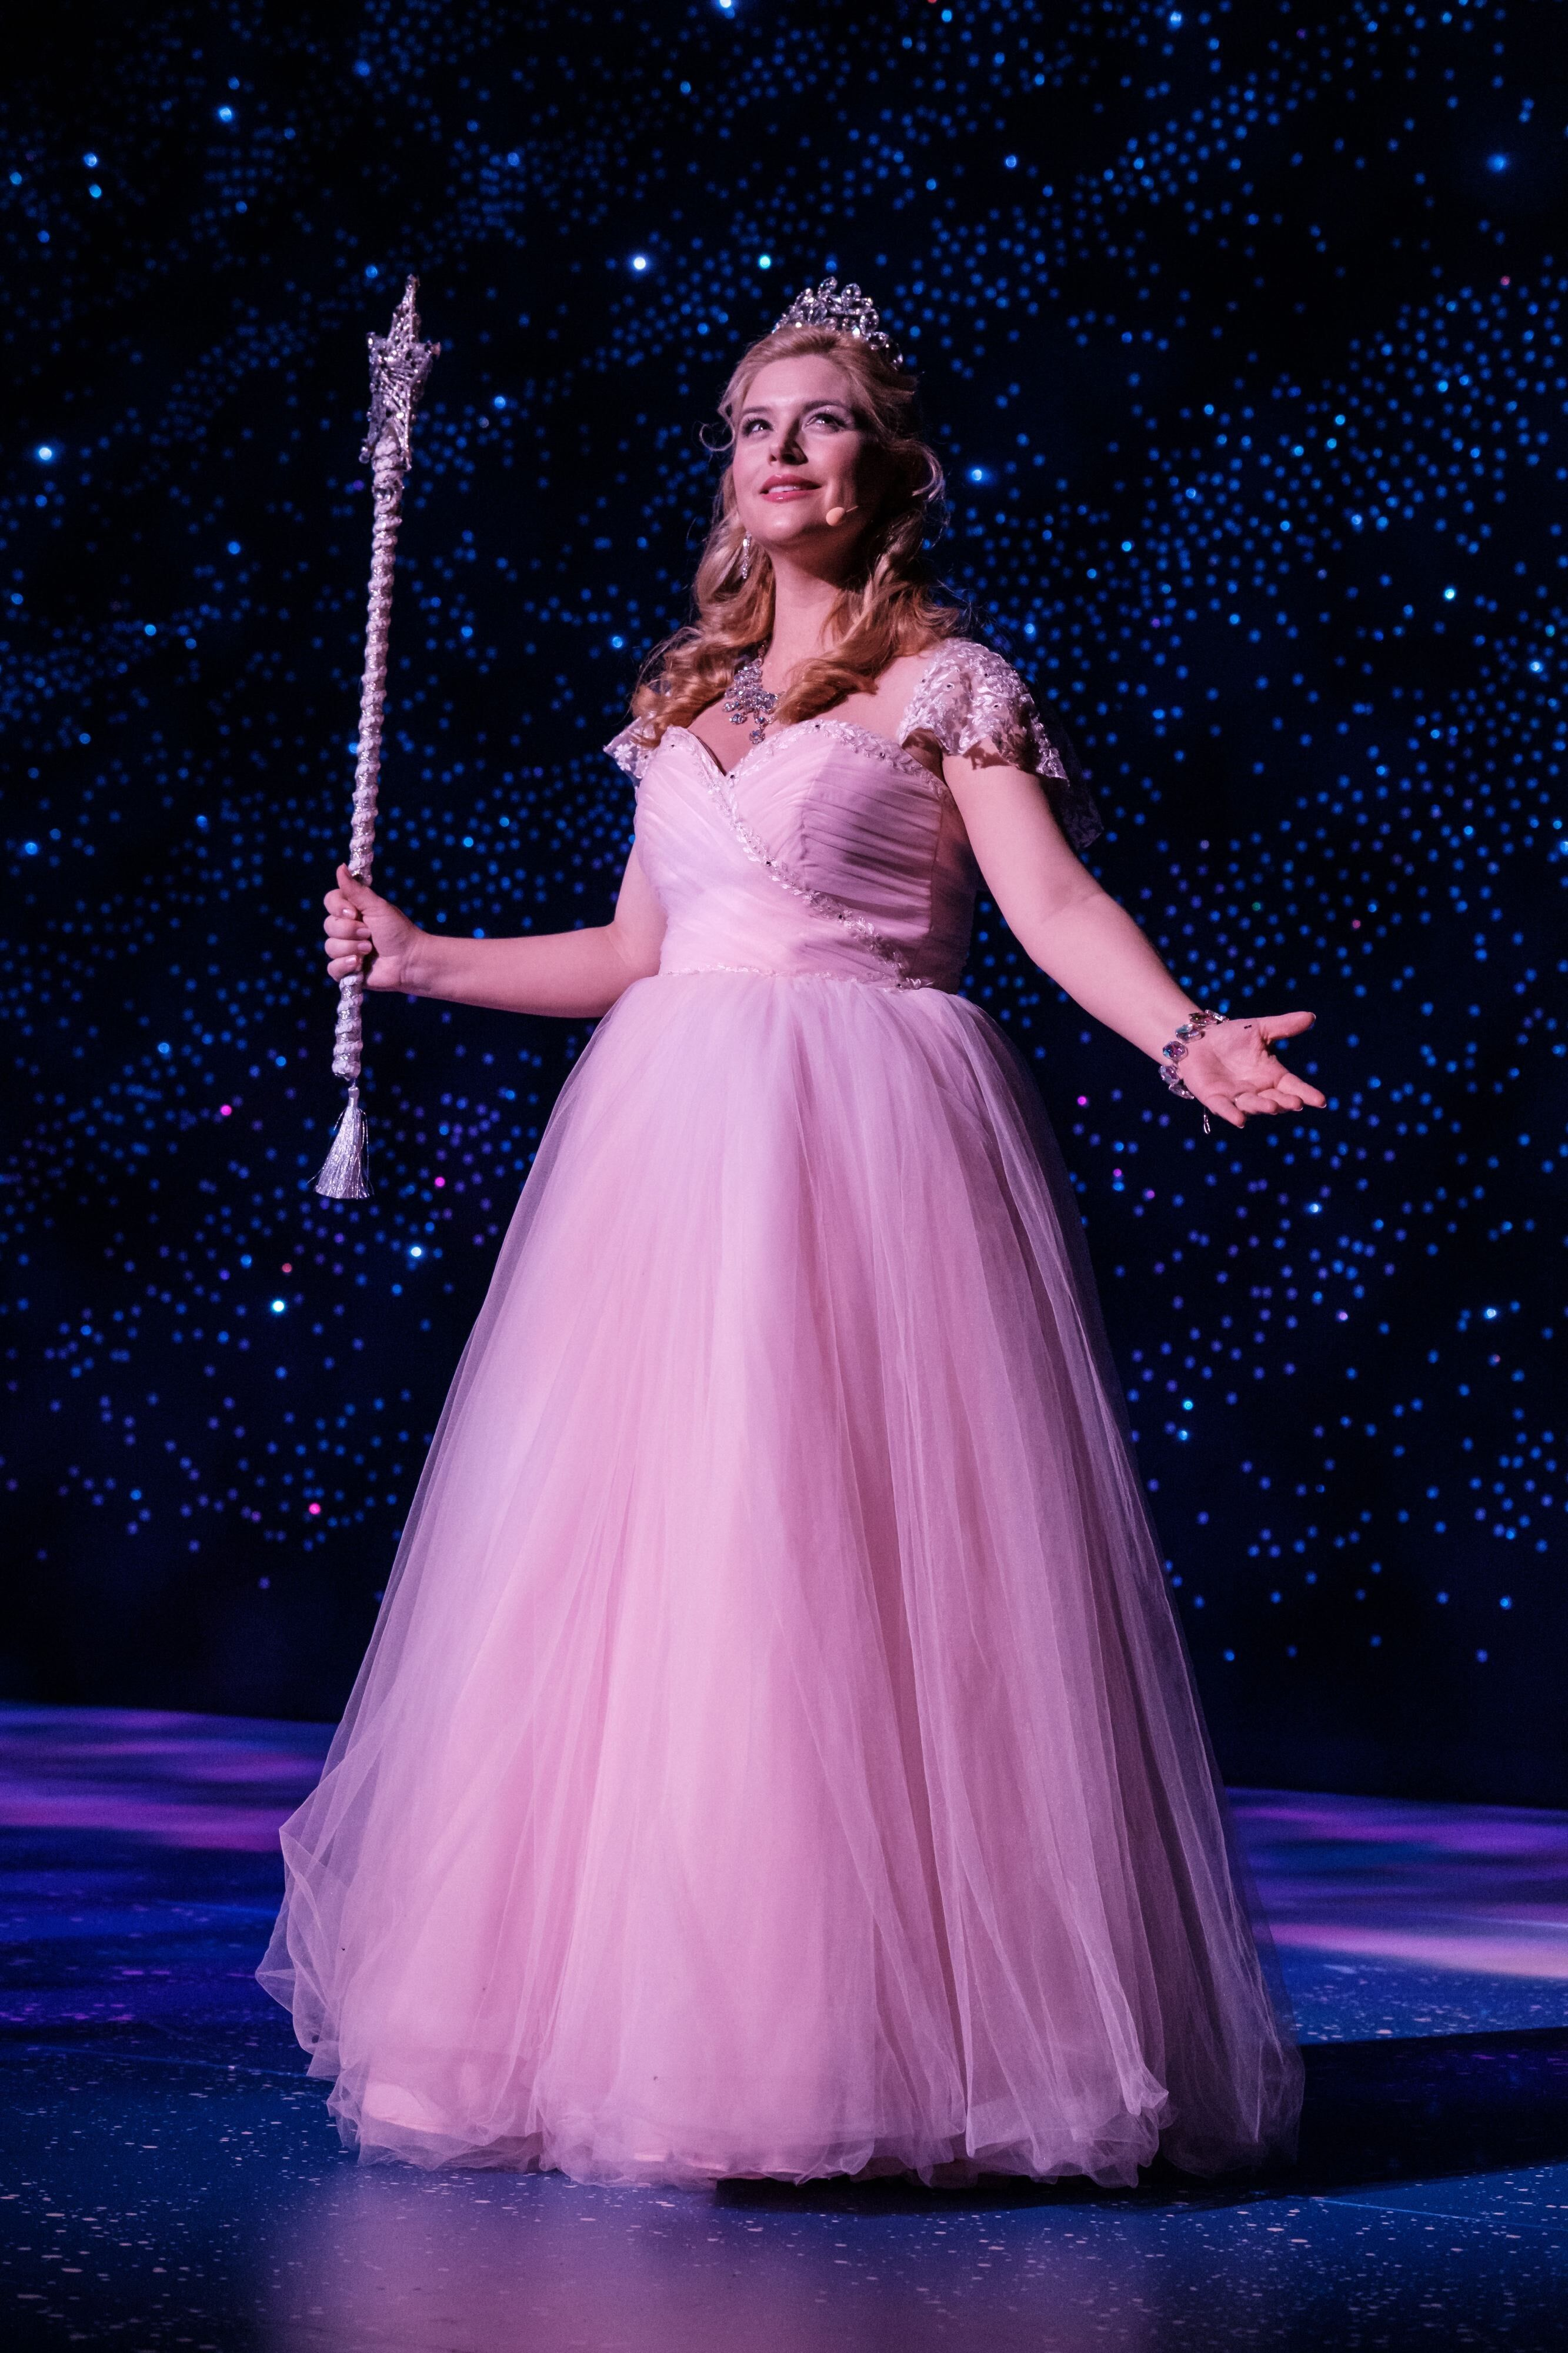 Lucy Durack Glinda the Good Witch in the musical Wicked